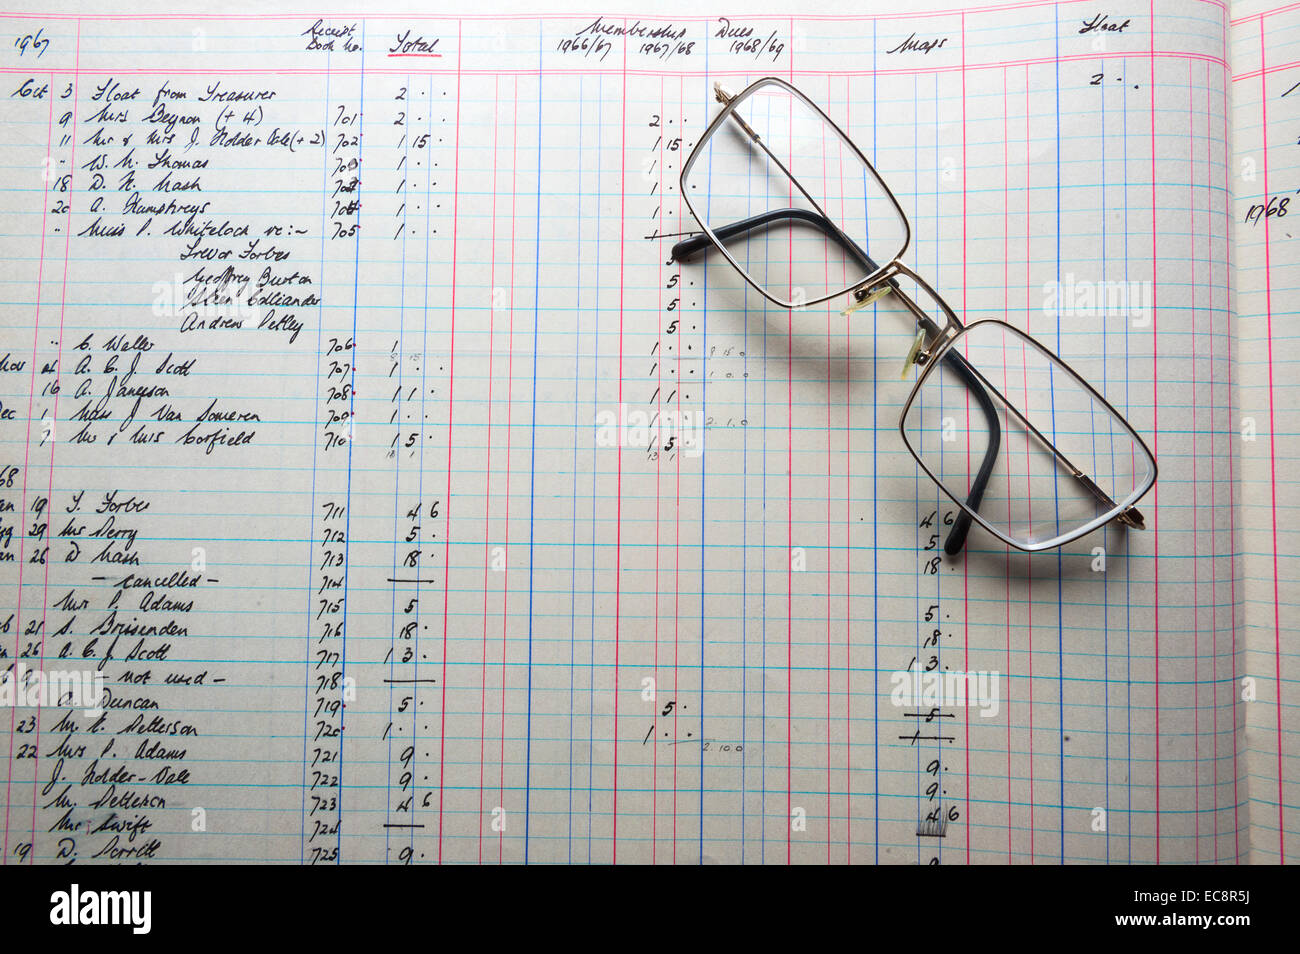 an old accounts ledger handwritten figures in pounds shillings and